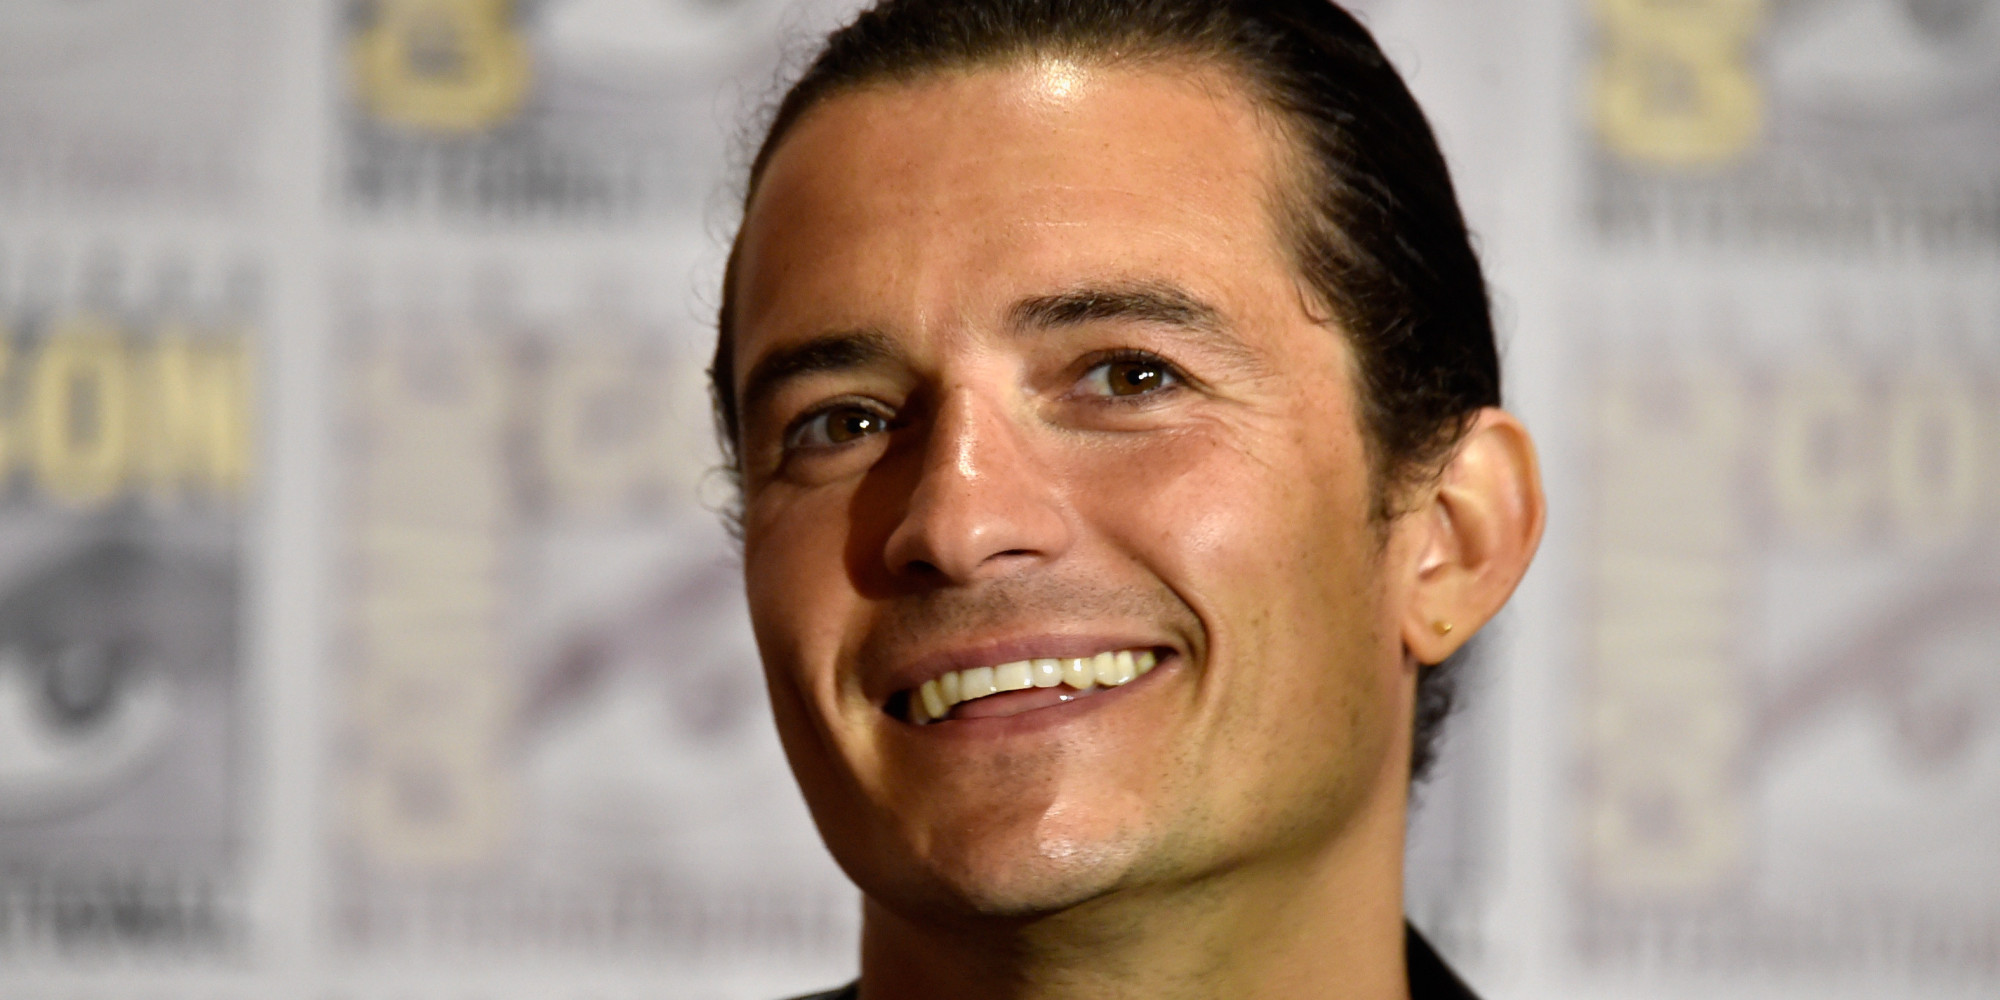 Orlando Bloom Dances His Bieber Cares Away To Pharrell's 'Happy' ...